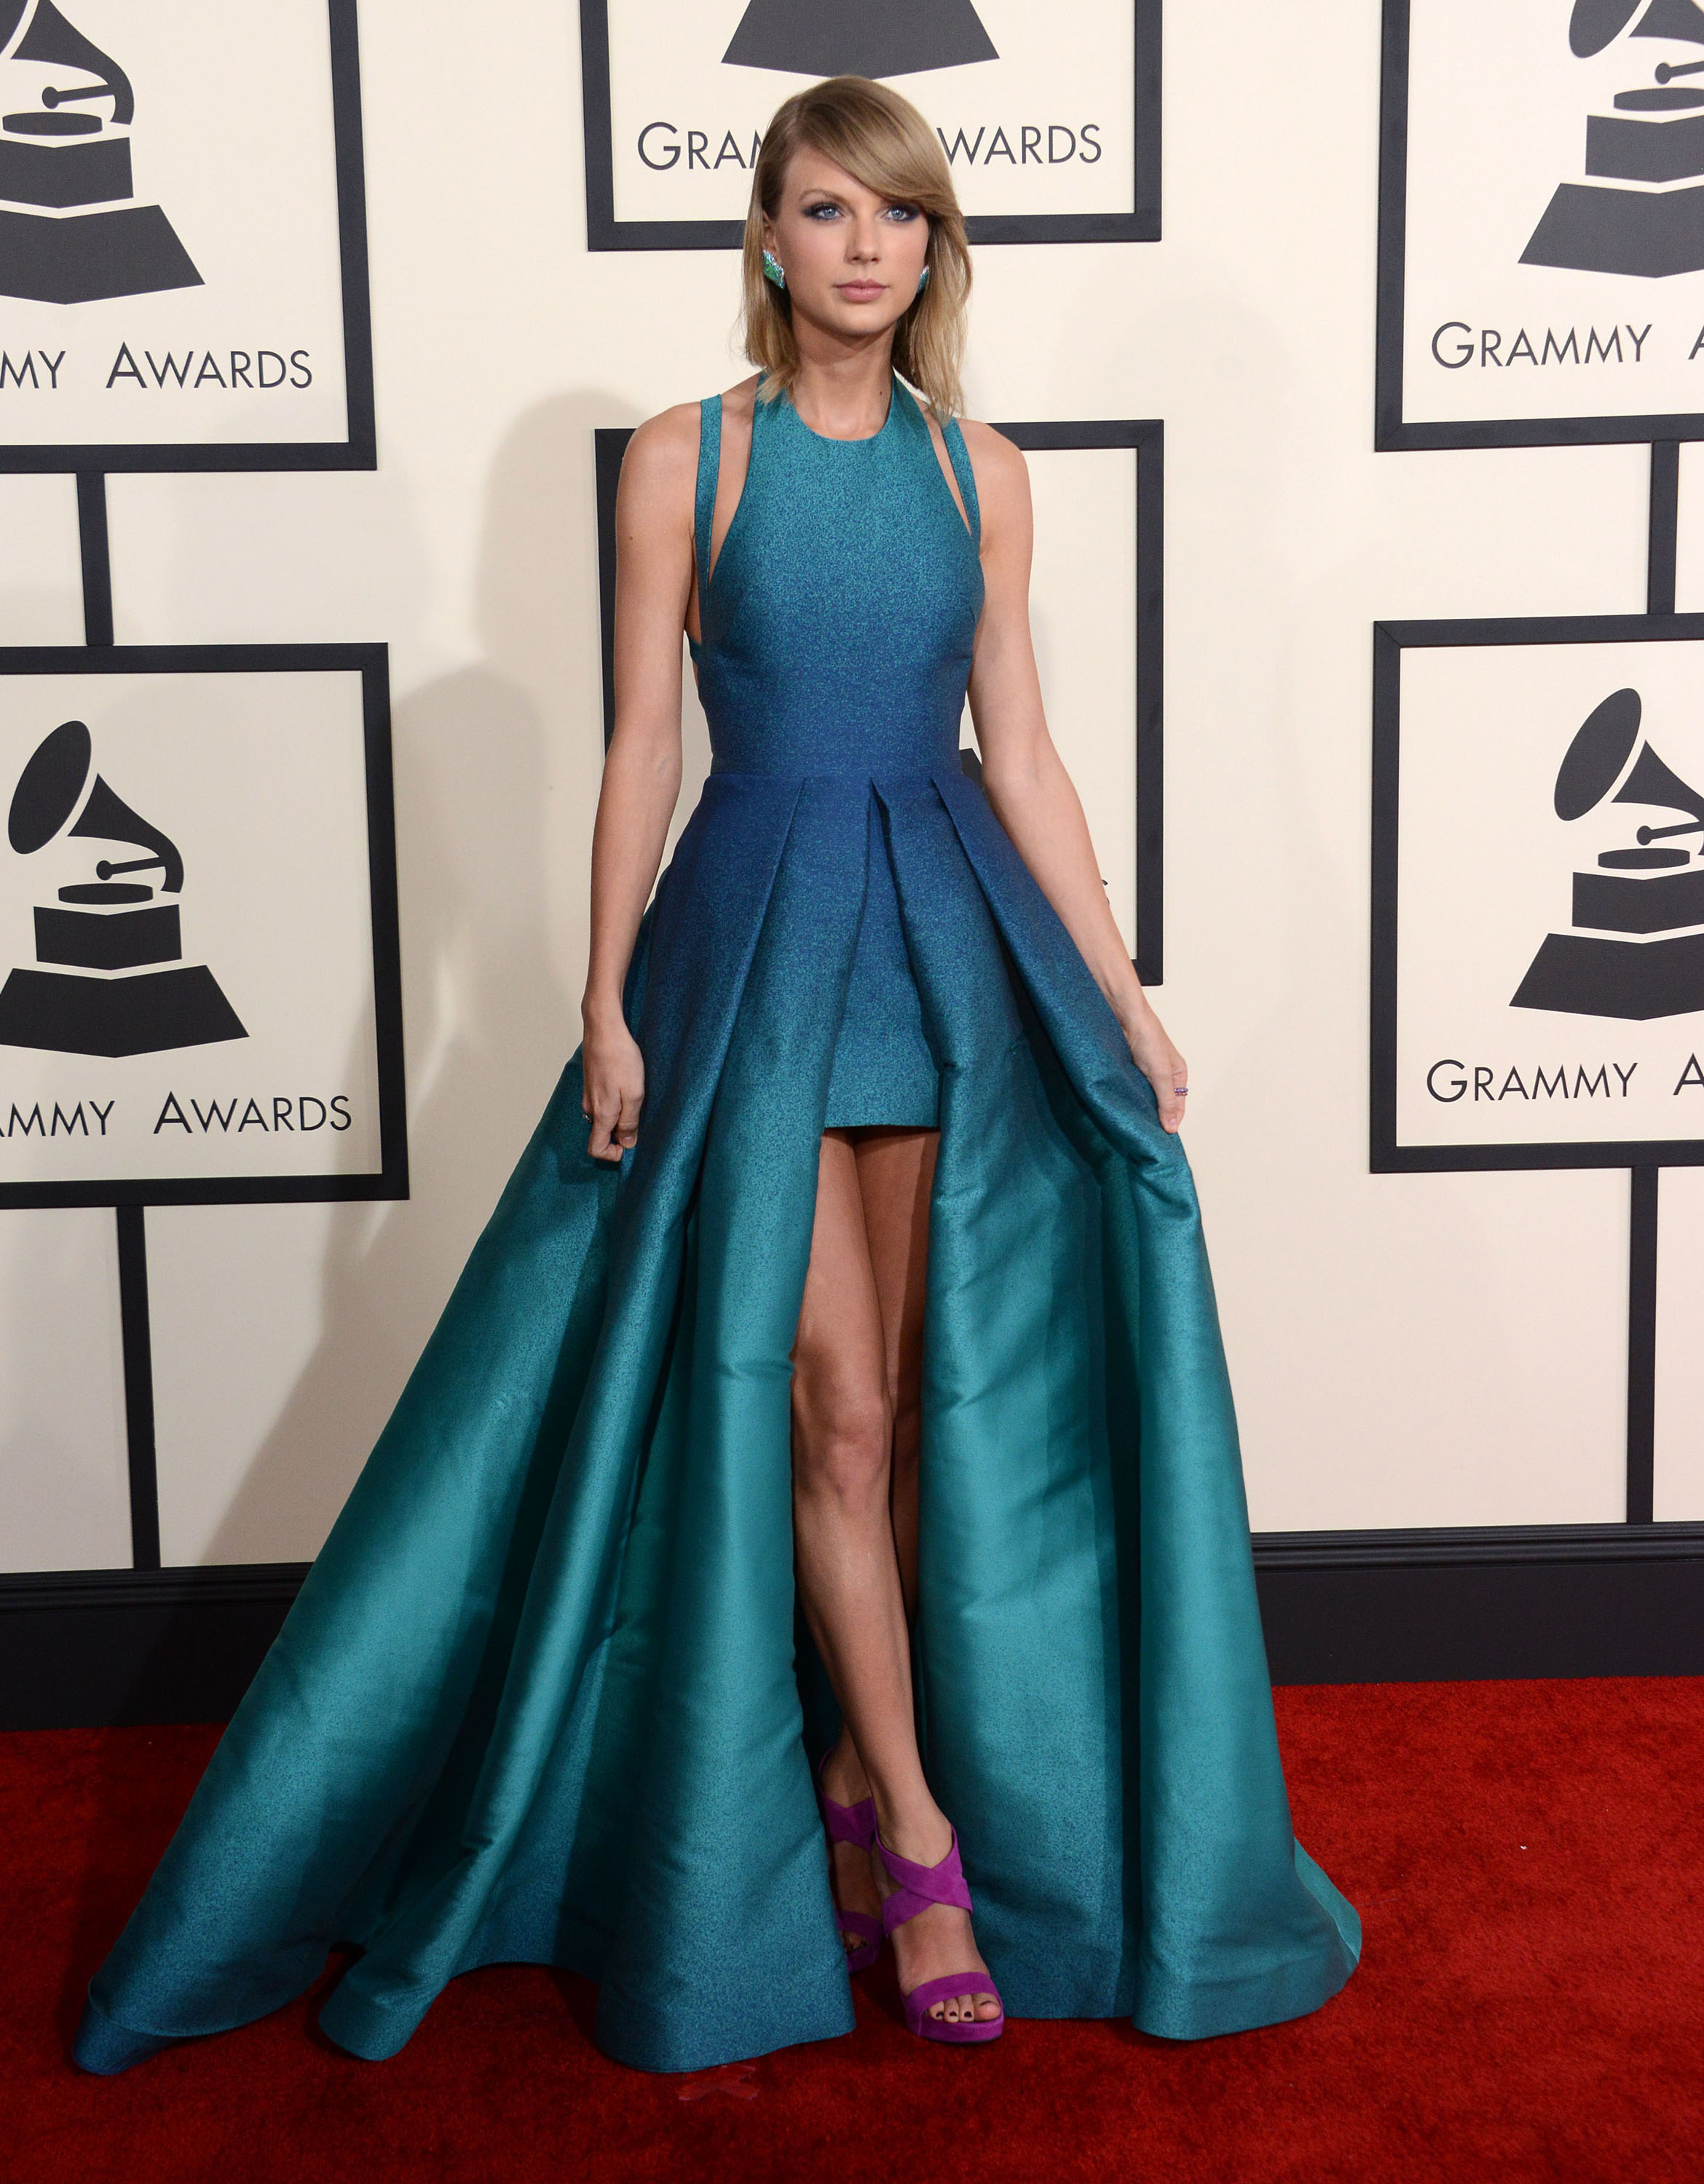 Grammys Well Played: Taylor Swift in Elie Saab